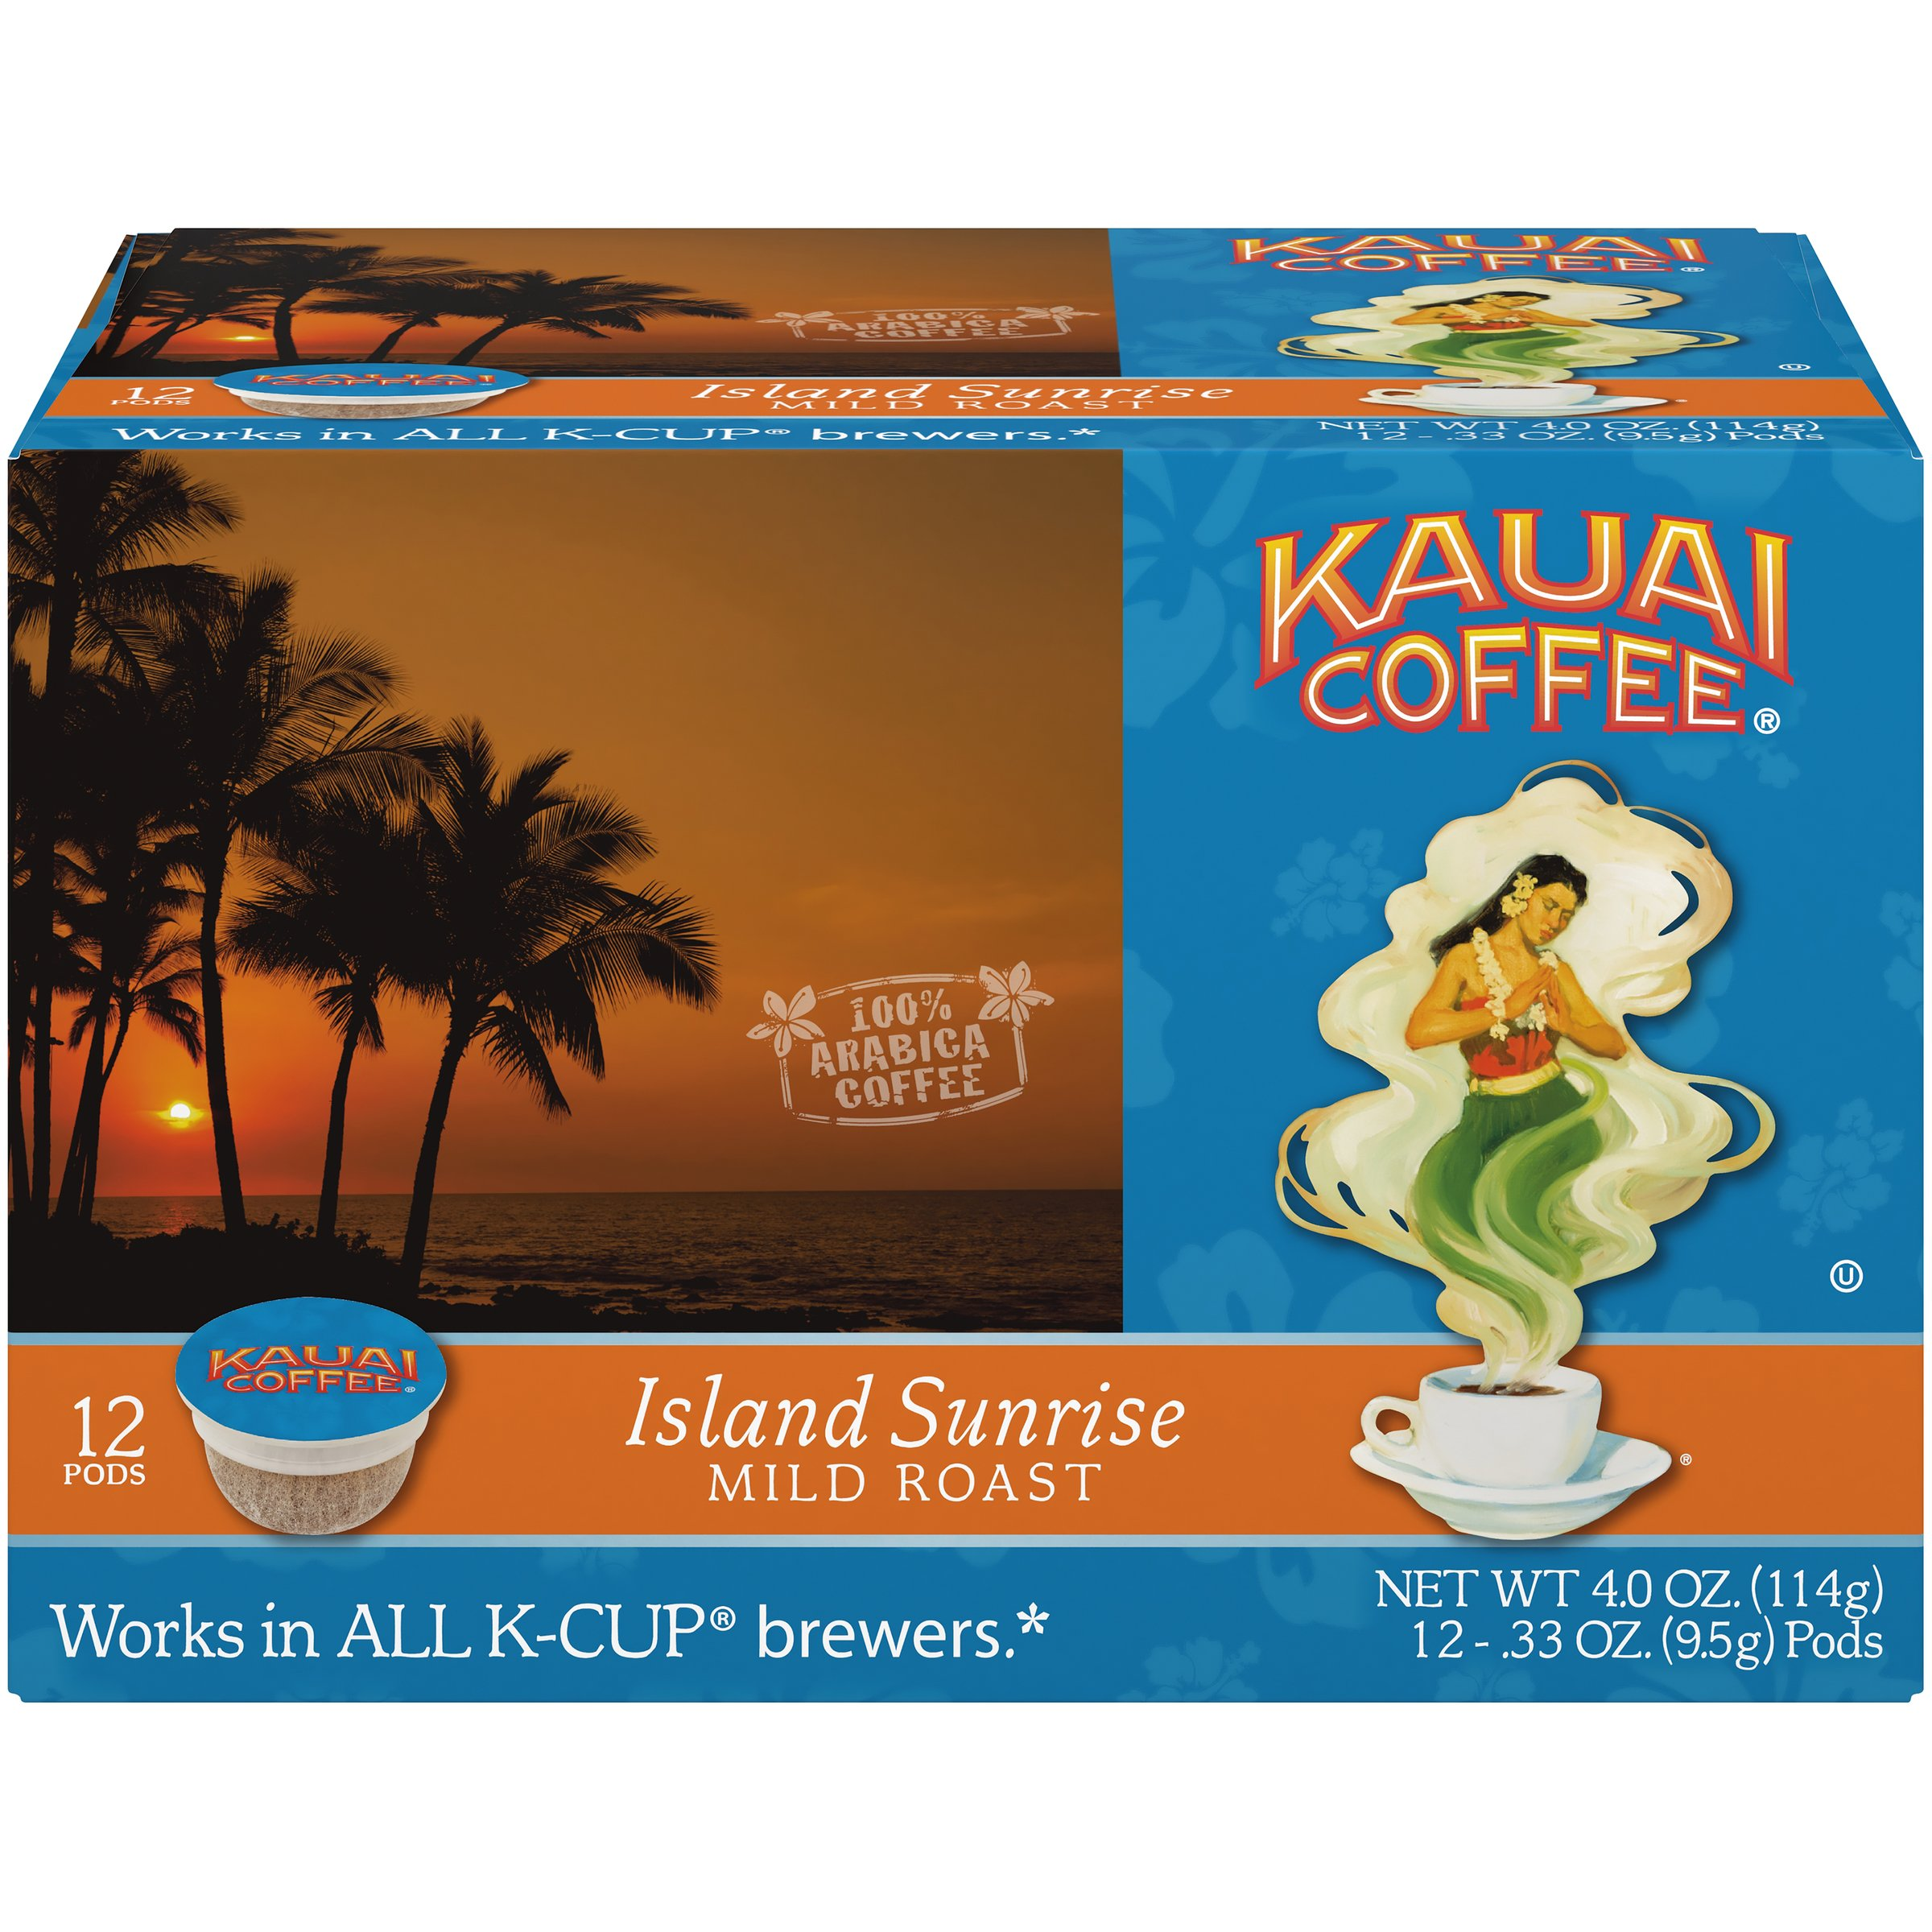 Kauai Coffee Single-serve Pods, Island Sunrise Mild Roast - 100% Premium Arabica Coffee from Hawaii's Largest Coffee Grower, Compatible with Keurig K-Cup Brewers - 72 Count